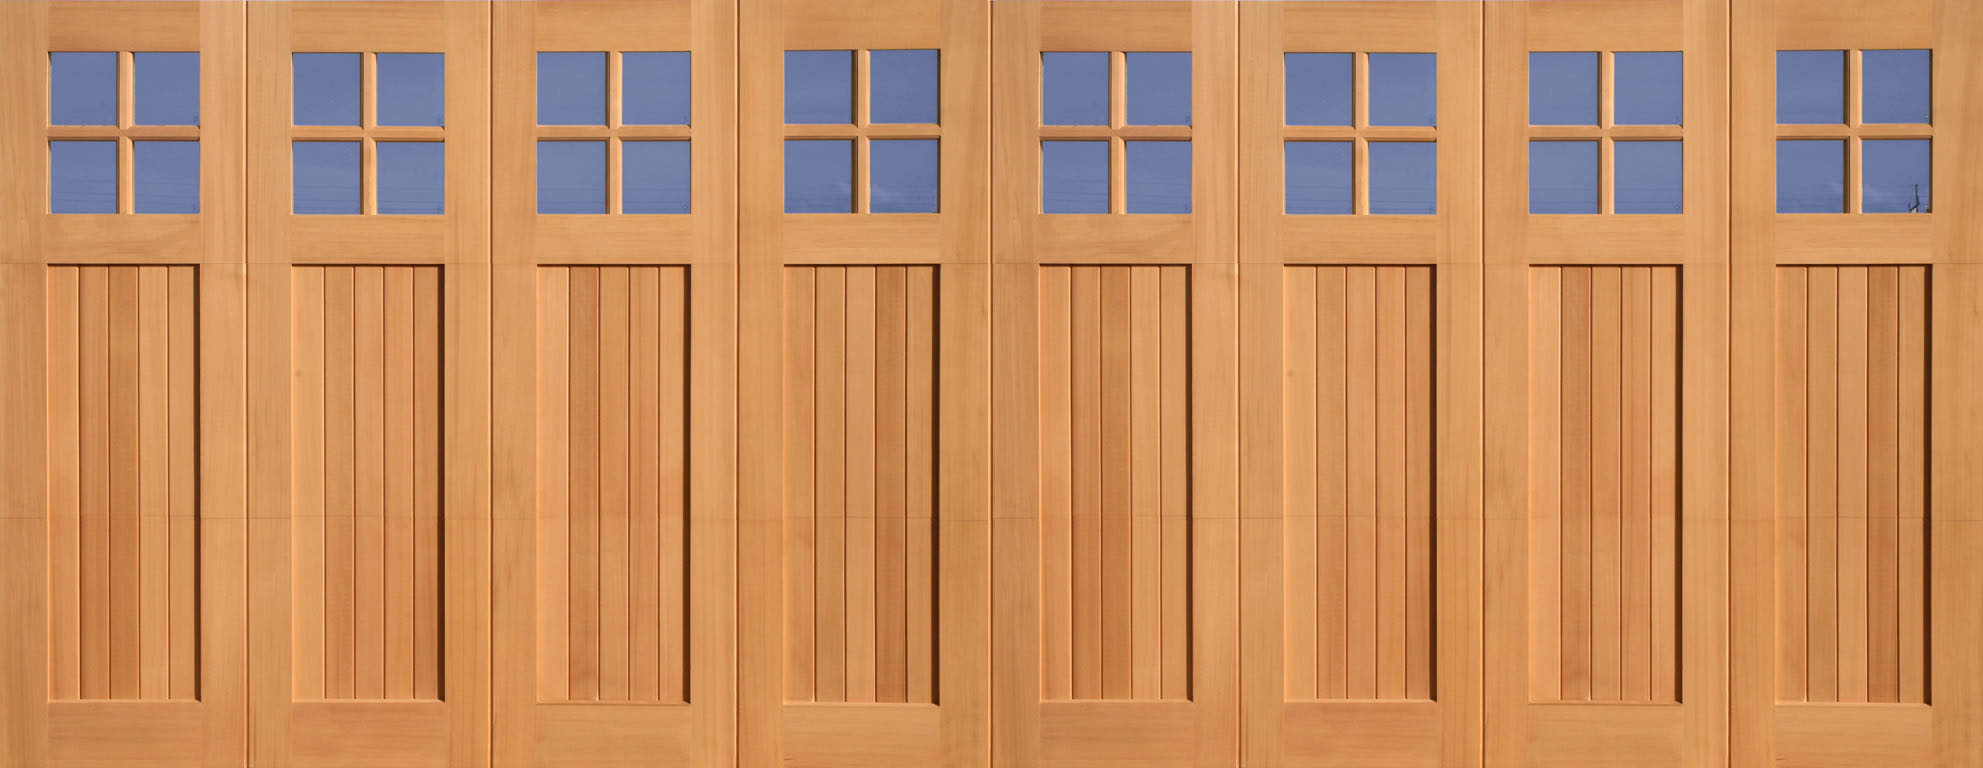 Wood overhead garage doors for sale in pennsylvania for 16 x 21 garage door panels